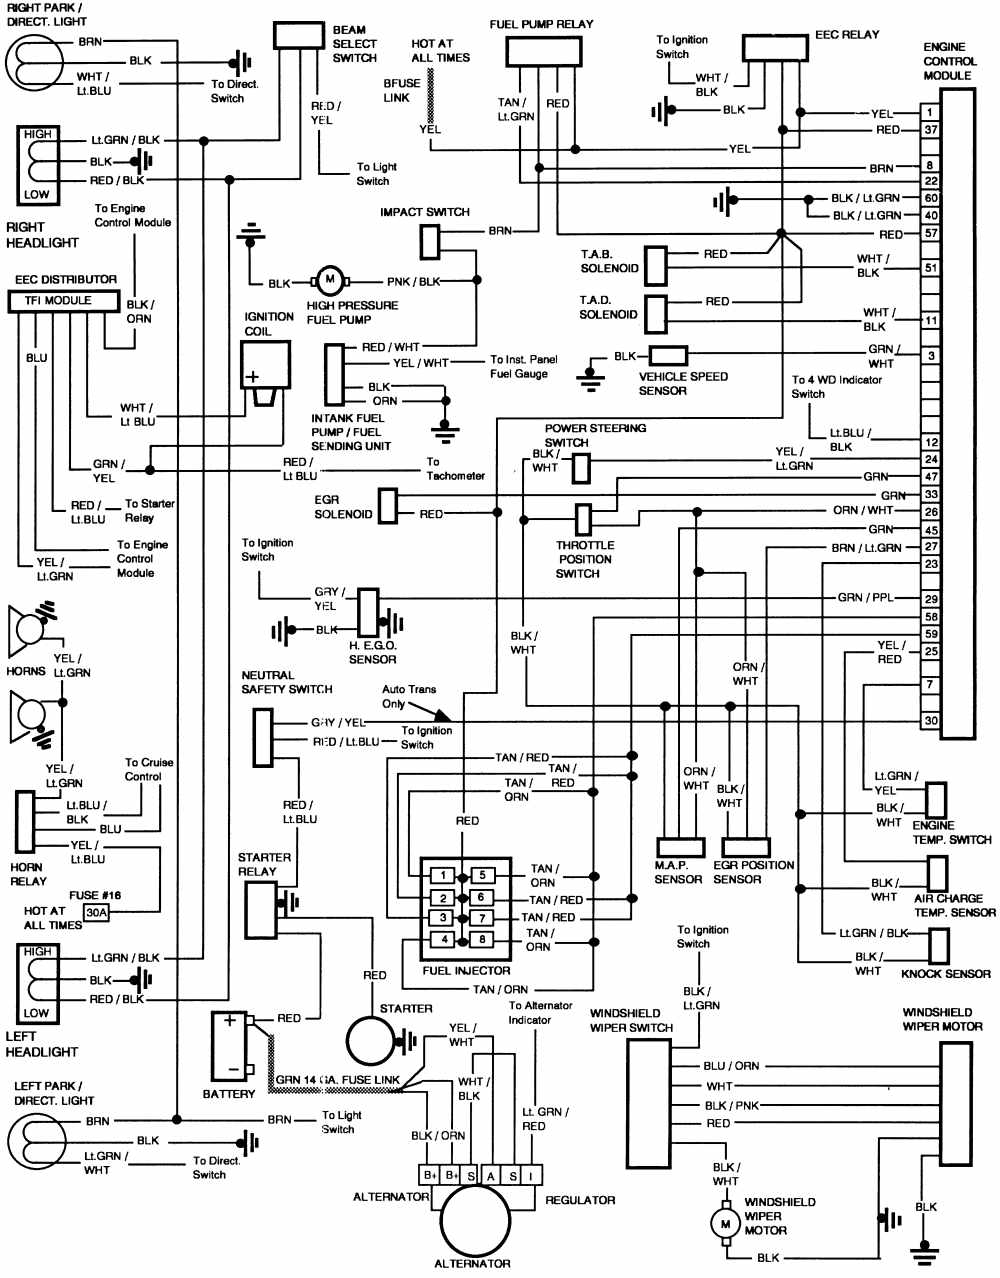 09 47095 likewise Wiring Diagram Pioneer Deh 1400 moreover 1259285 Start Problems 1986 F250 together with Pioneer Deh 150mp Plug Wiring Diagram as well Pioneer Deh 14 Wiring Diagram. on pioneer deh 150mp wiring